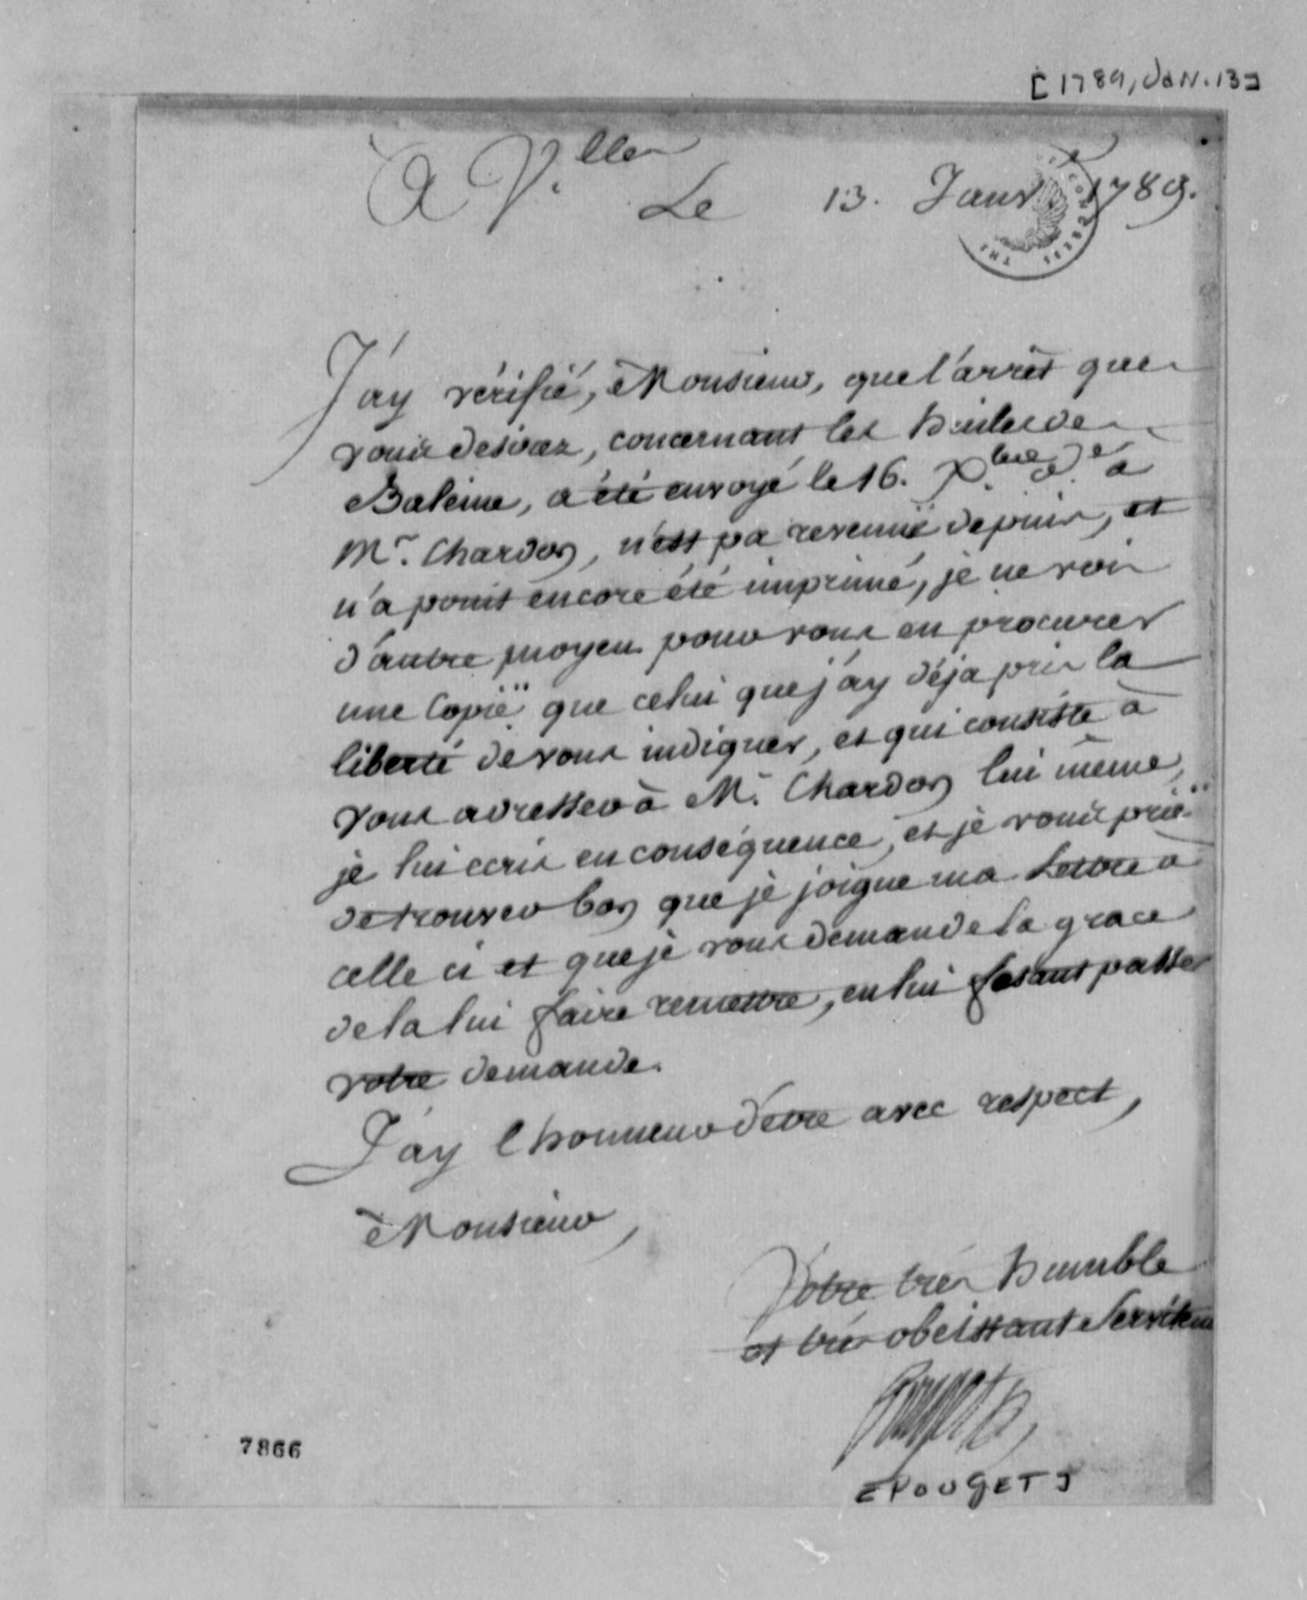 Pouget to Thomas Jefferson, January 13, 1789, in French